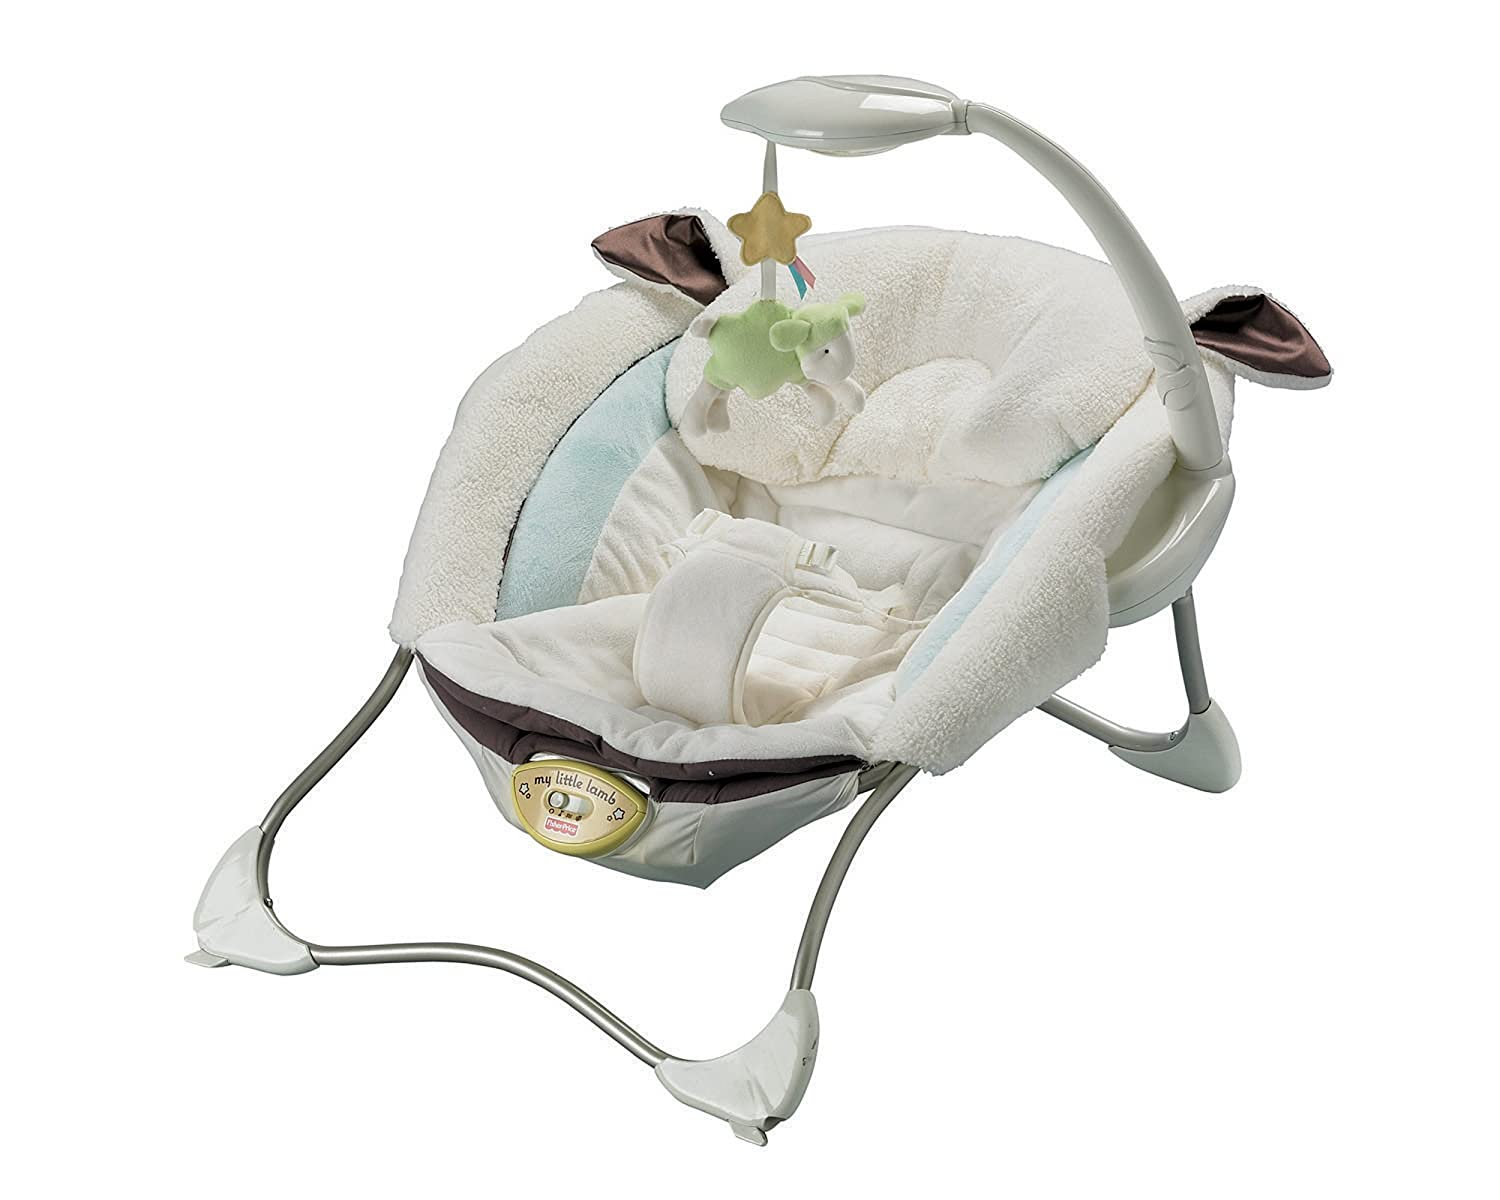 Fisher price baby papasan chair - Amazon Com Fisher Price My Little Lamb Infant Seat Infant Sitting Chairs Baby